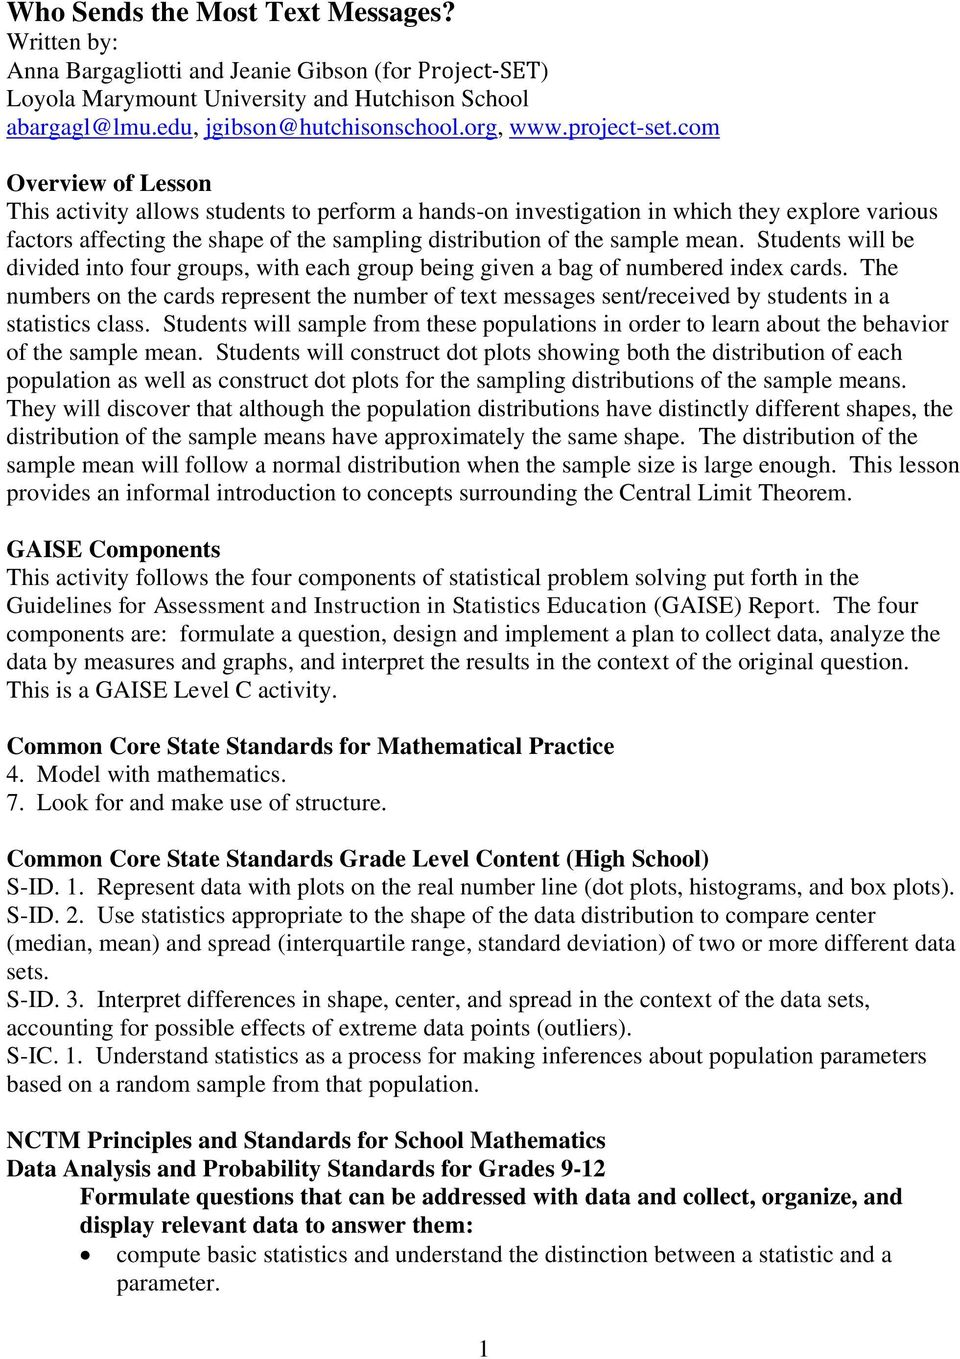 com Overview of Lesson This activity allows students to perform a hands-on investigation in which they explore various factors affecting the shape of the sampling distribution of the sample mean.